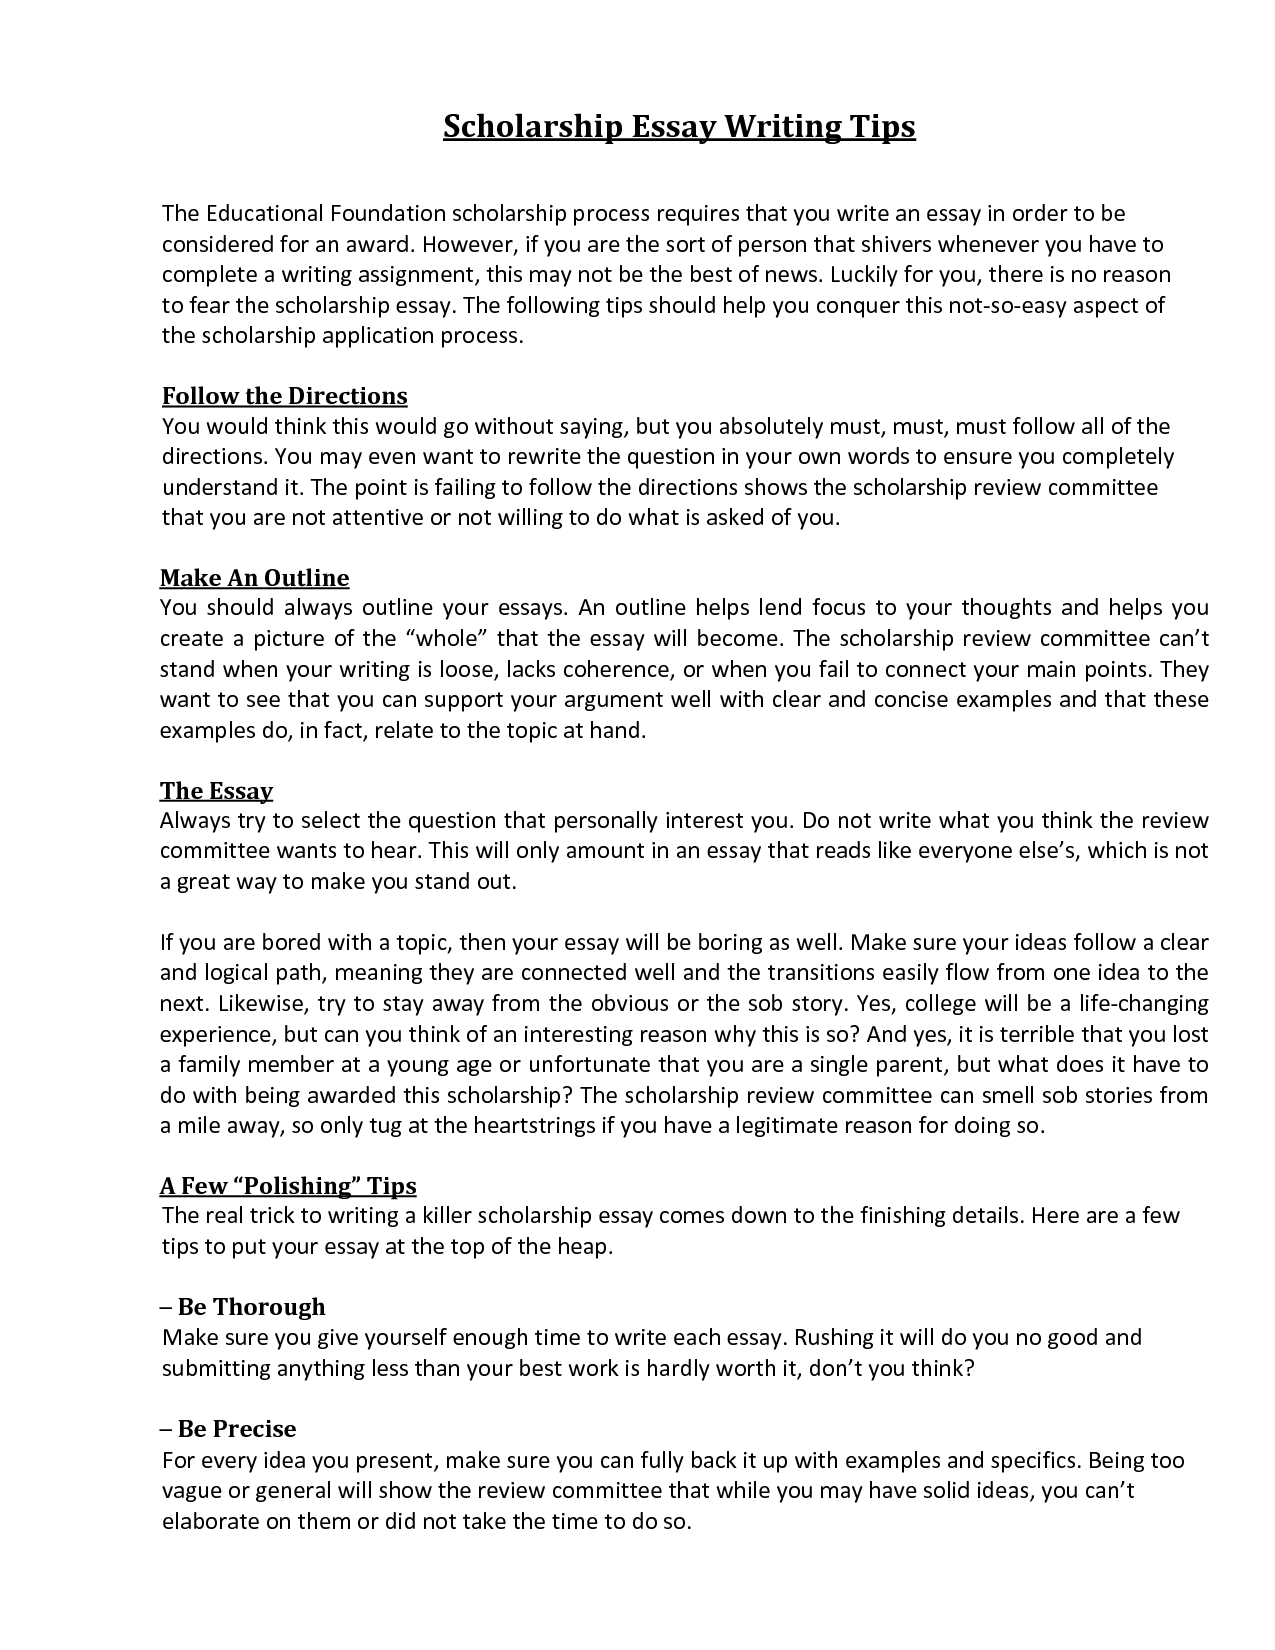 007 Essay Example Dbk4jdbin7 How To Write Good Surprising Essays Best Pdf A Better Bryan Greetham Learning In English Full